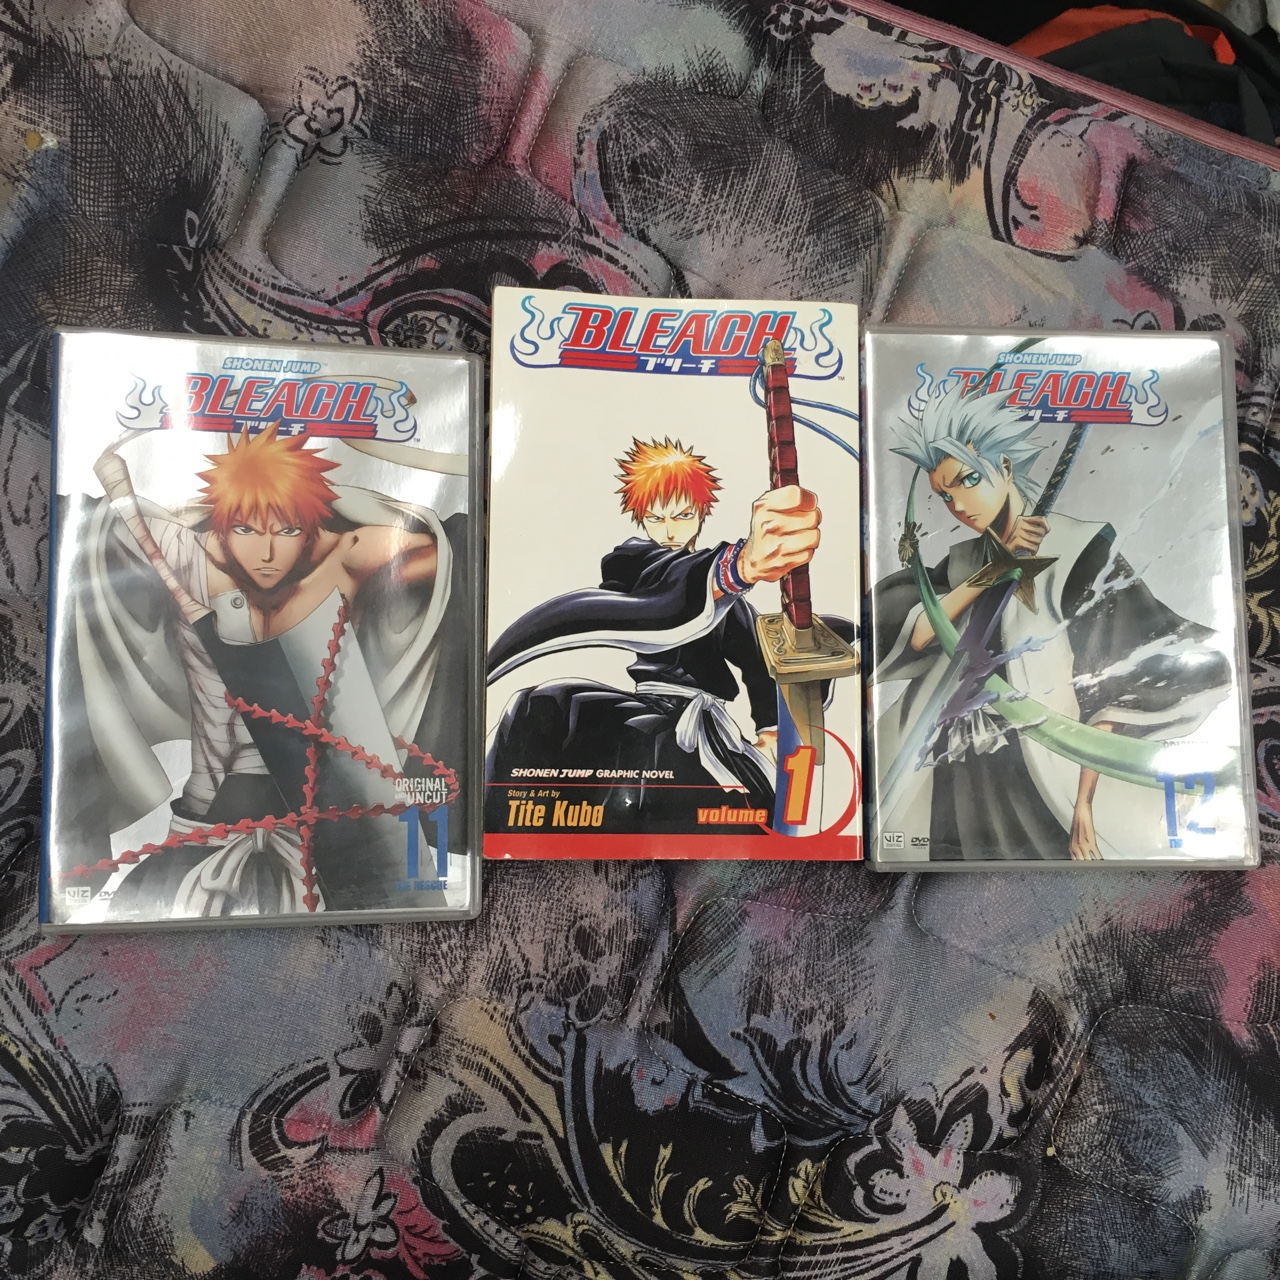 Bleach anime set  Comes with 2 DVDs and a manga     - Depop